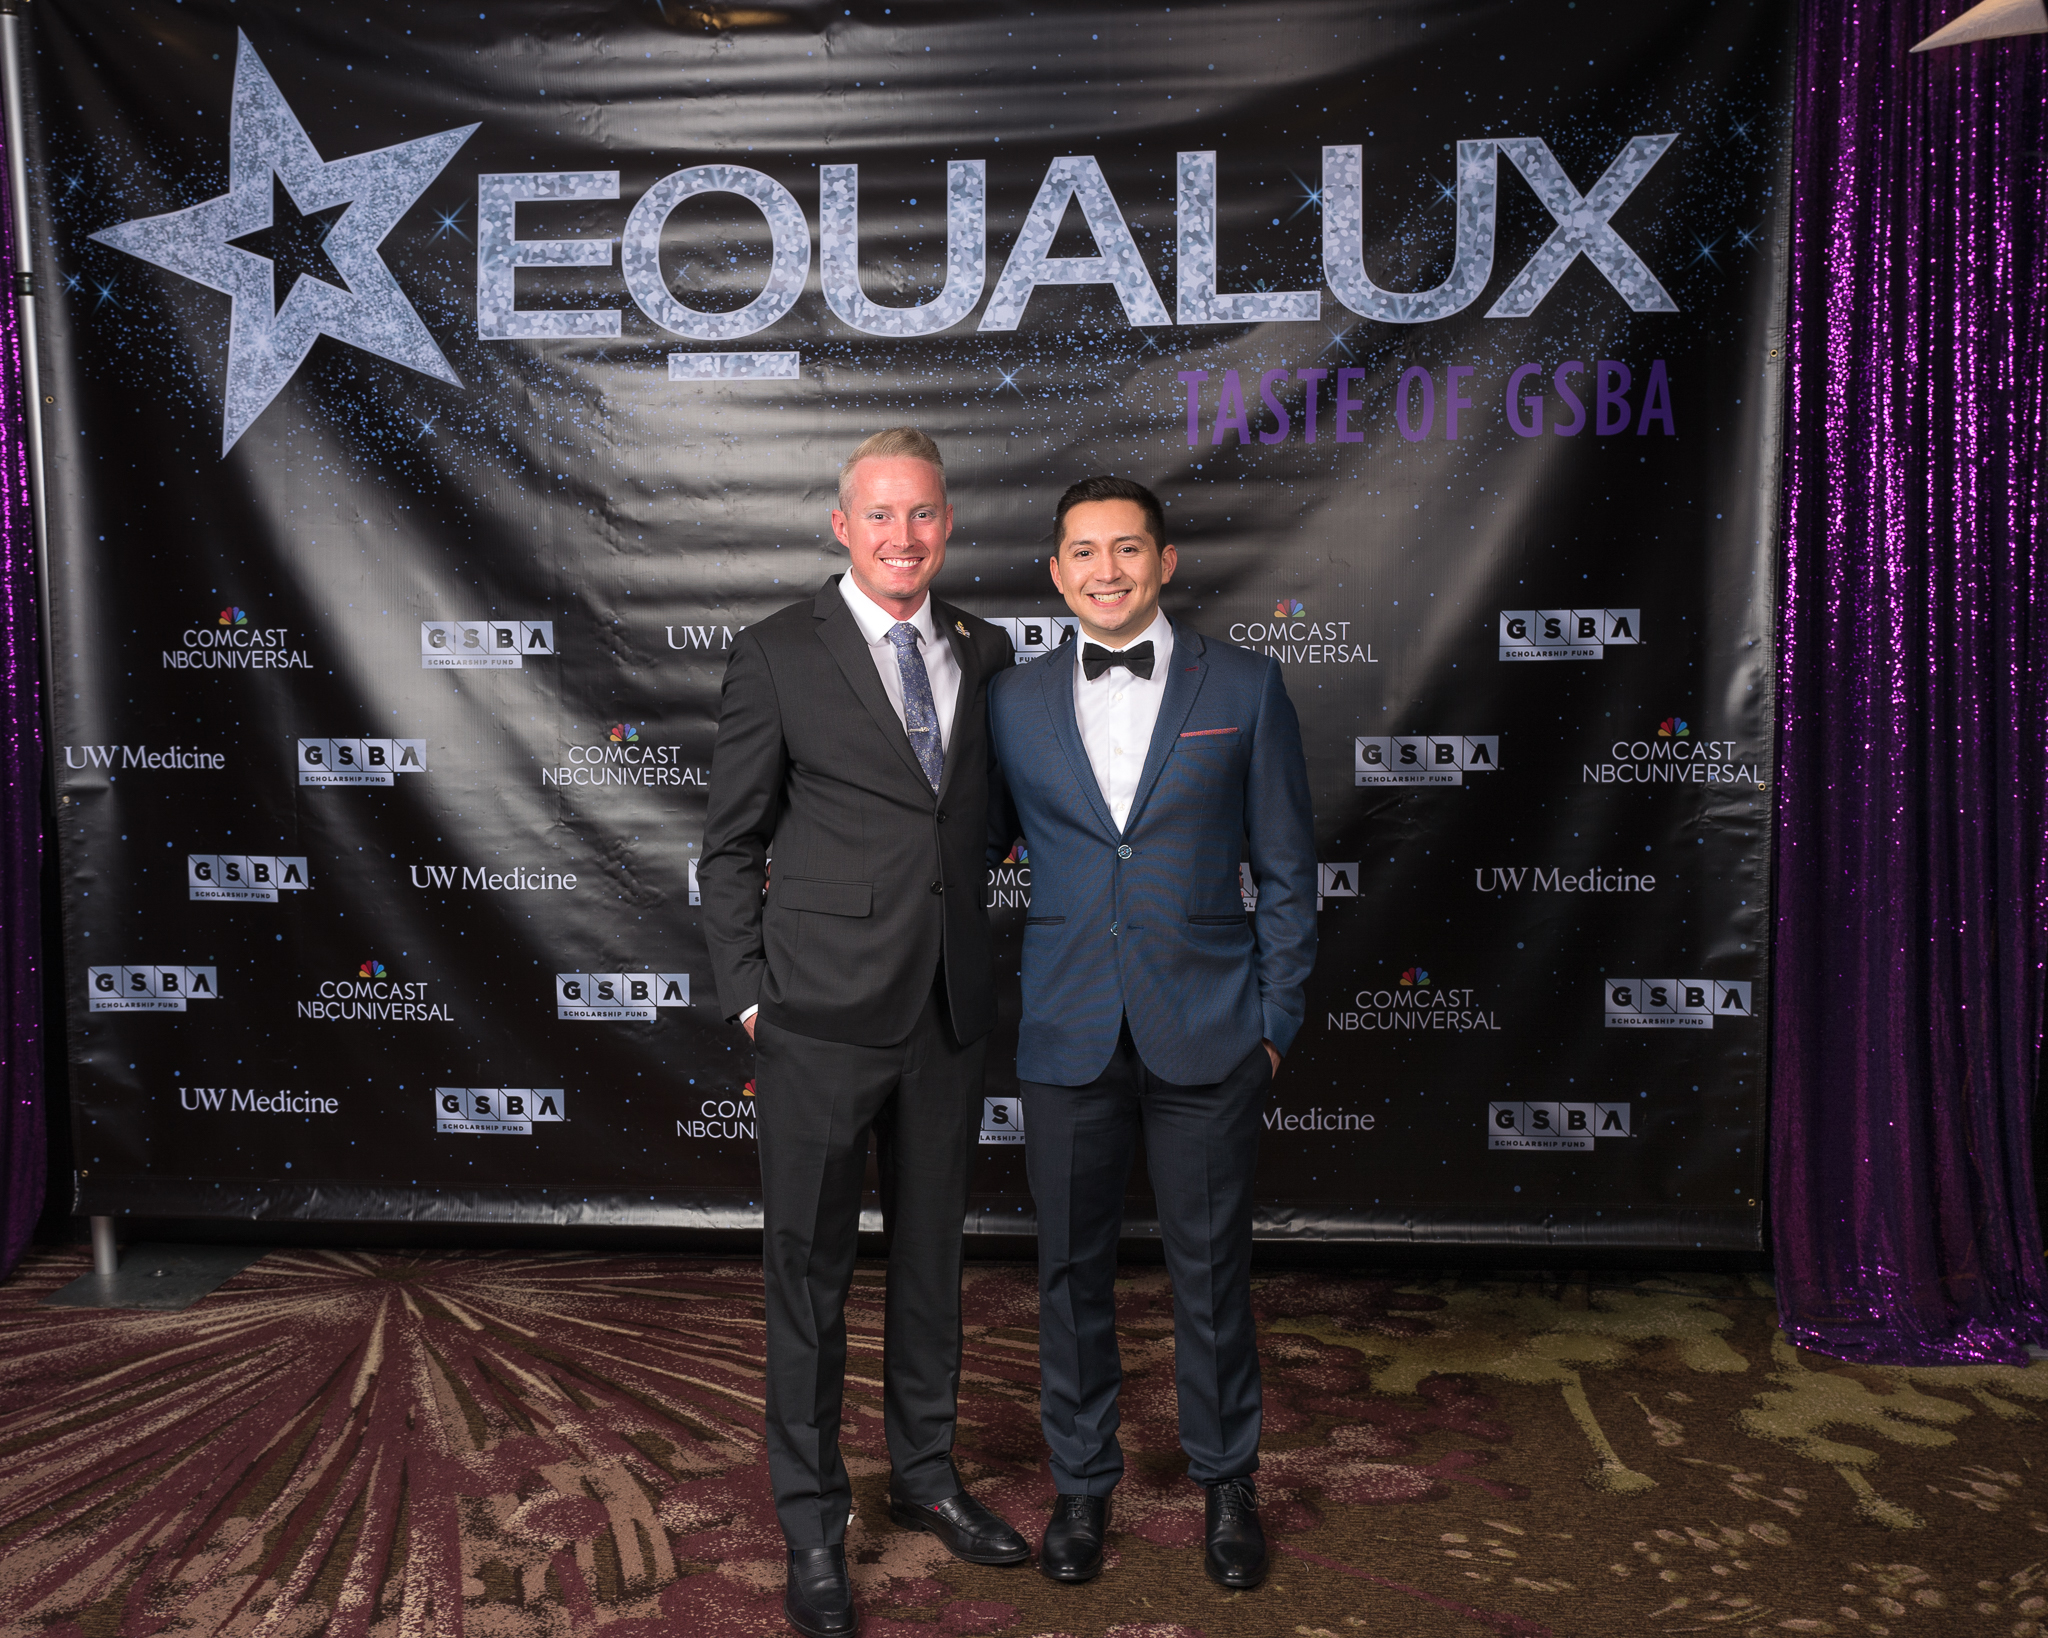 111718_GSBA EQUALUX at The Westin Seattle (Credit- Nate Gowdy)-122.jpg